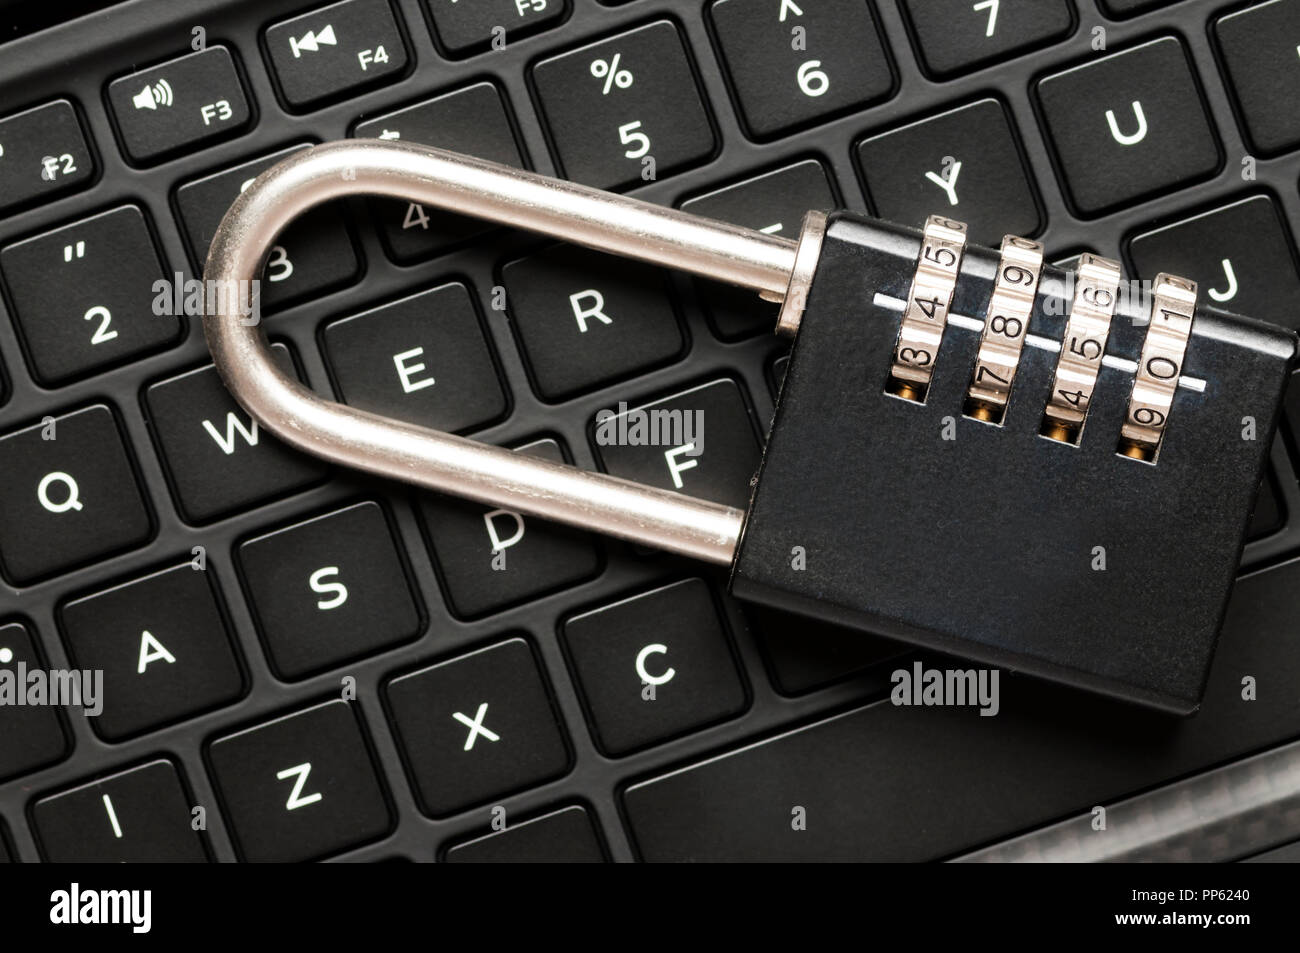 Combination lock on a computer keyboard.  Online security concept. - Stock Image